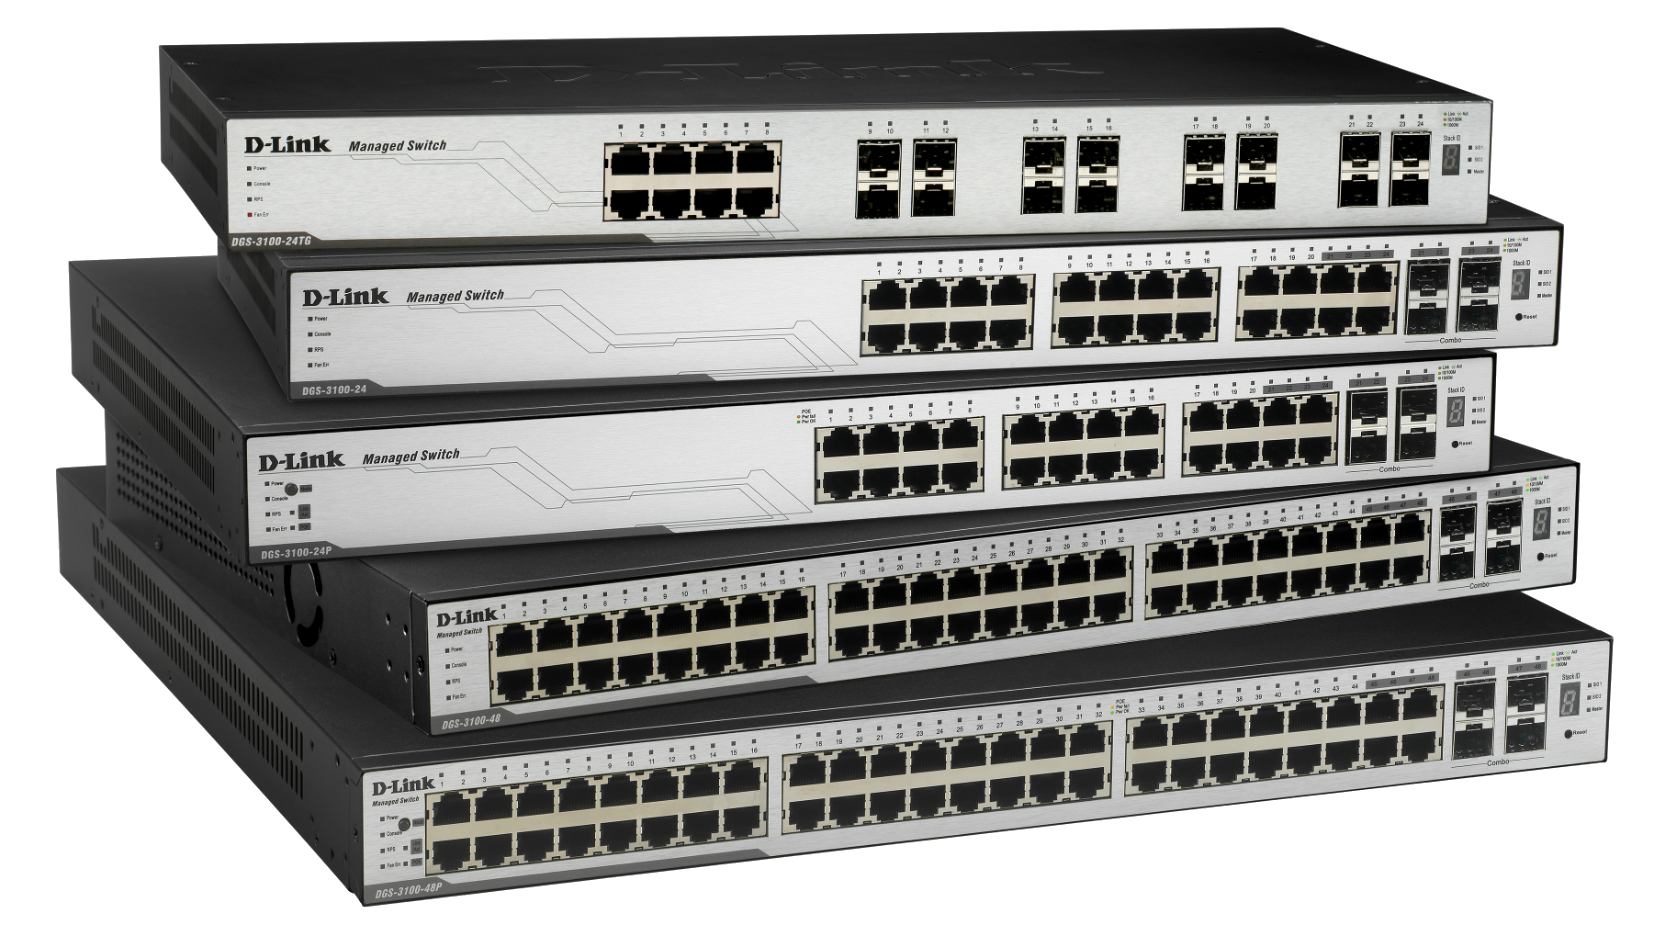 D-Link DGS-3100-24P Switch Drivers for Mac Download